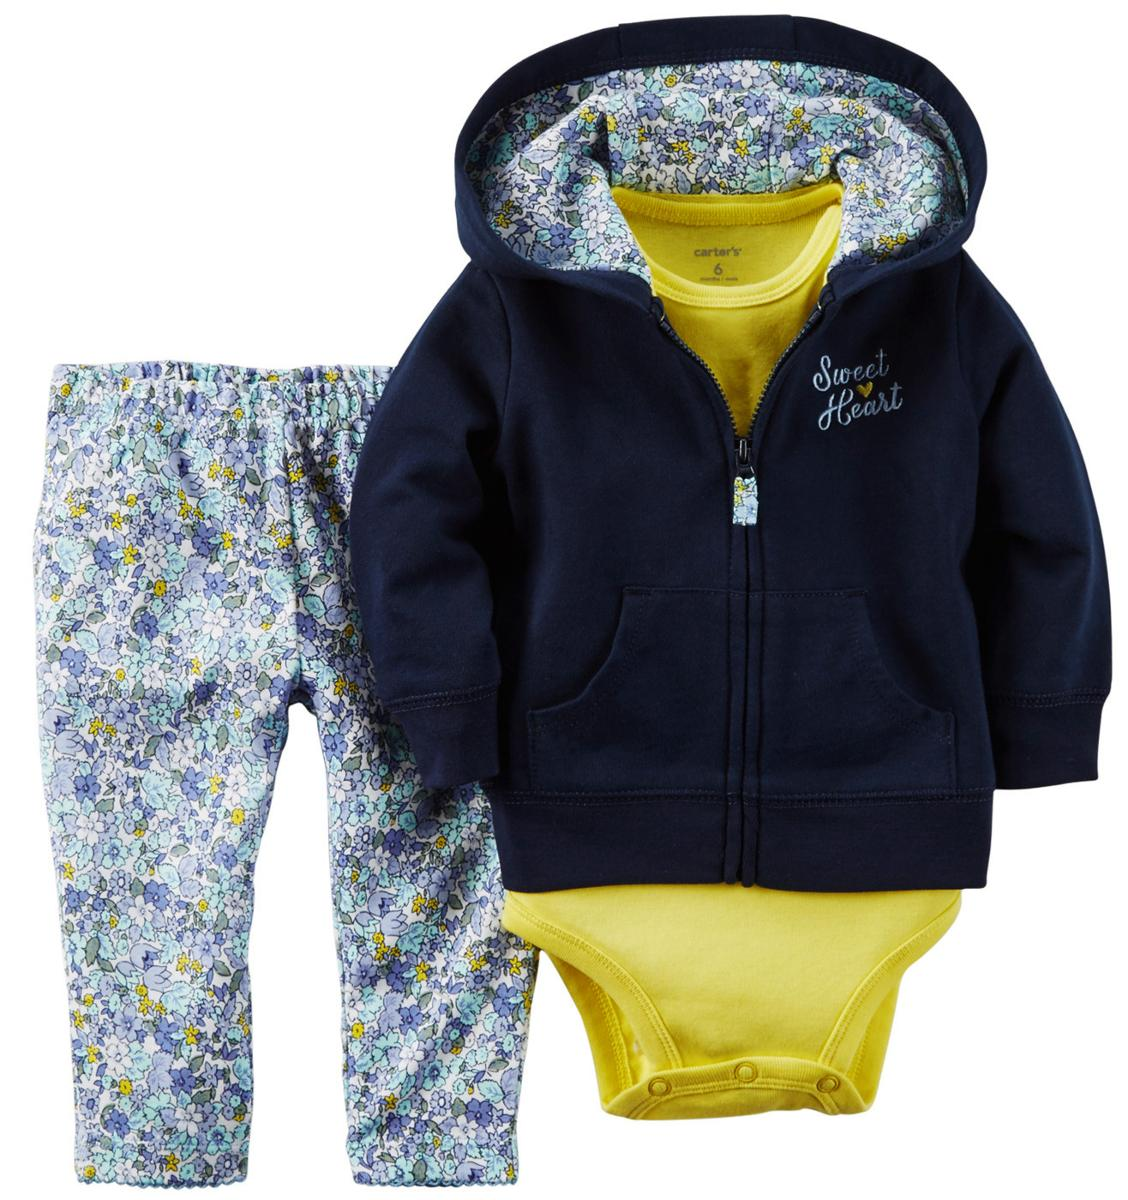 Extra 20% OFF* on Entire Carters Range